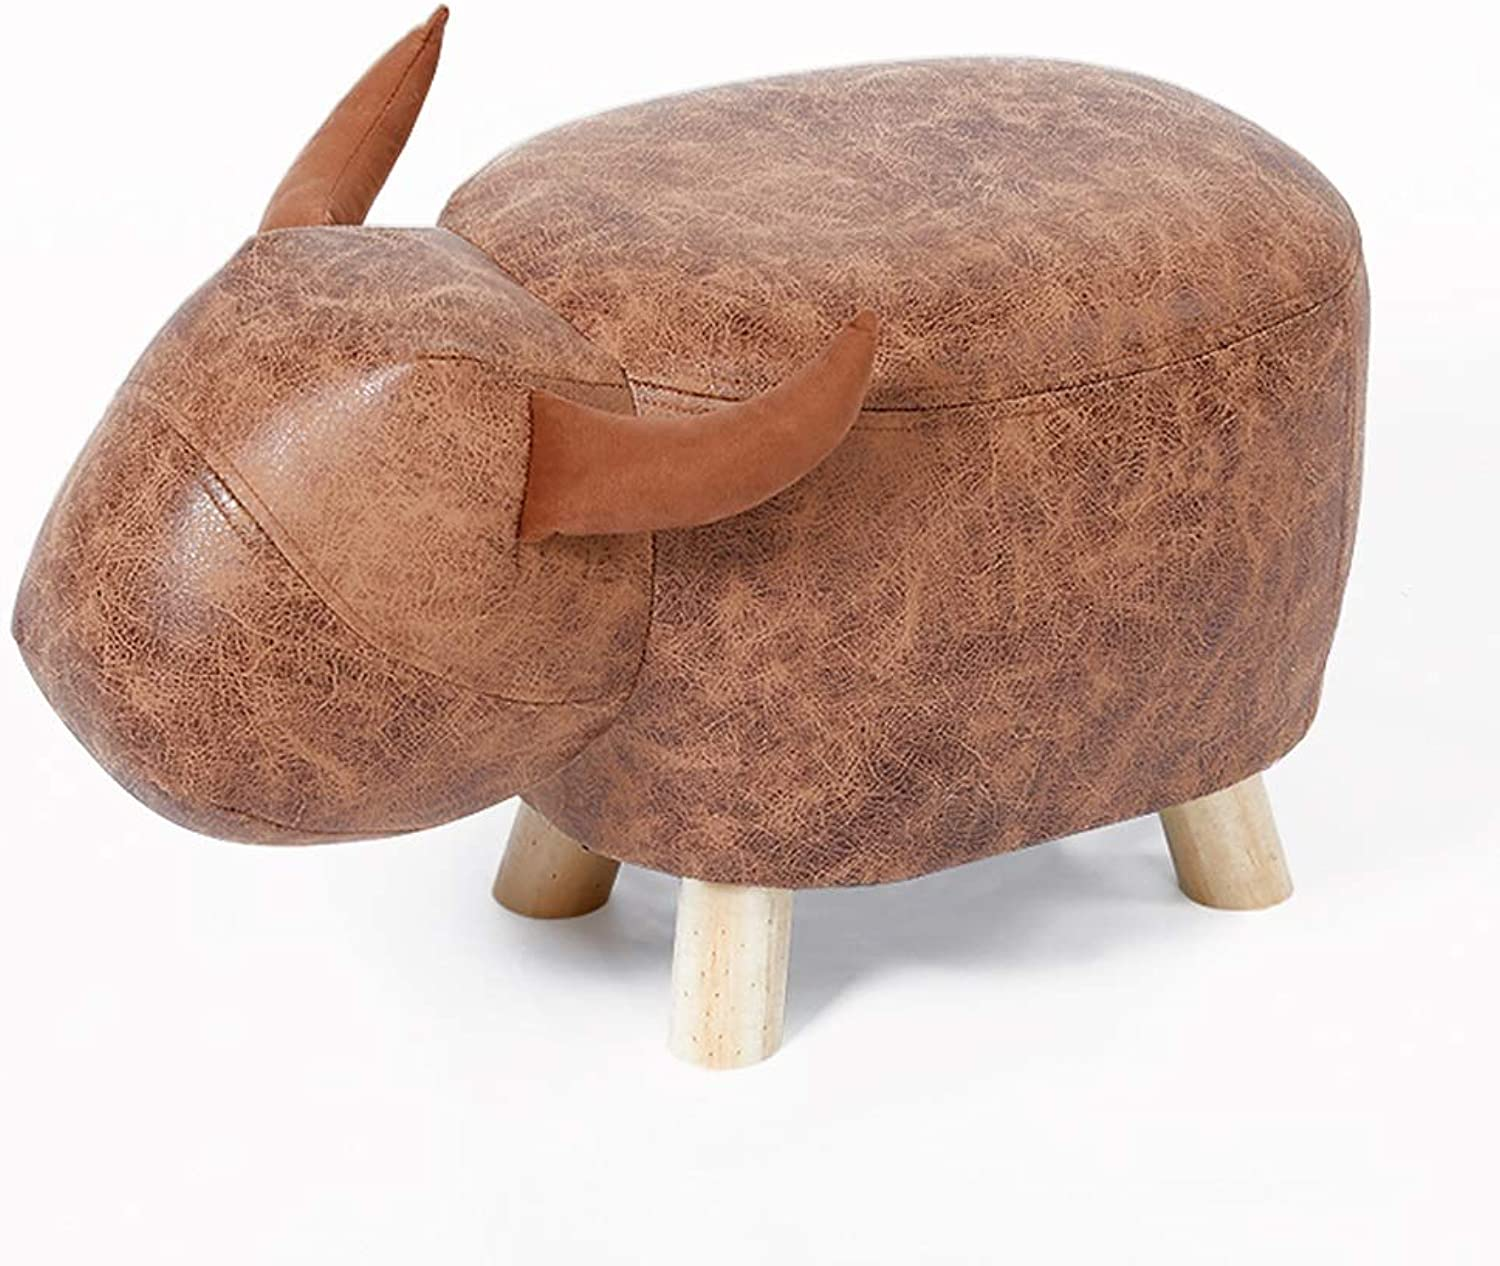 FLY Fashion Creative Maverick Elephant Change shoes Bench Bench Home Foot Stool Stool Stool Solid Wood Sofa Stool Stool (color   Brown)